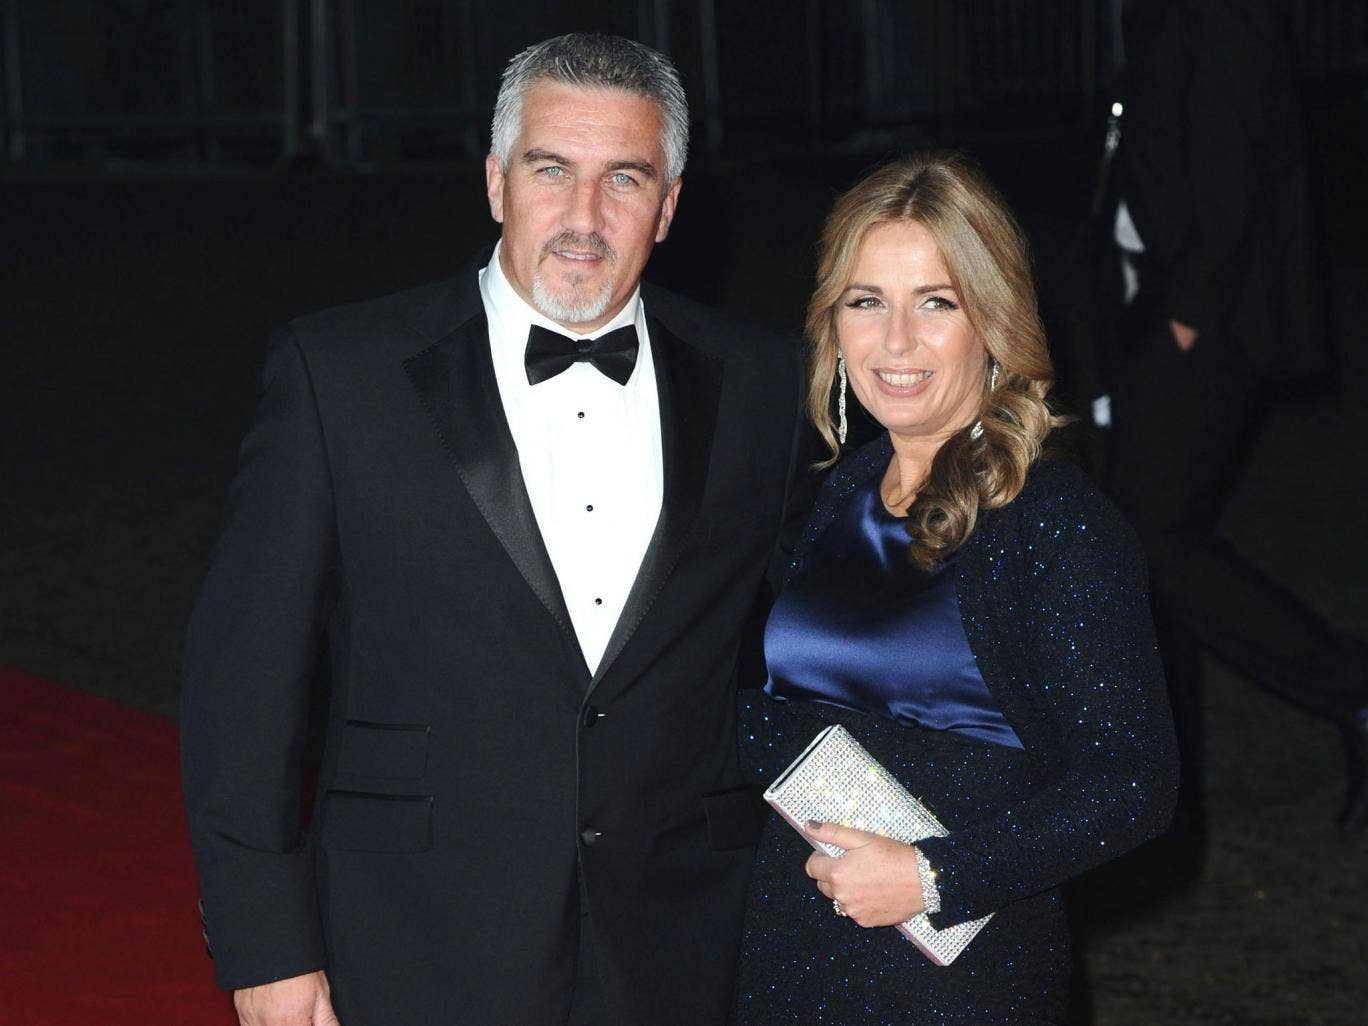 Paul Hollywood and his wife Alexandra have a son